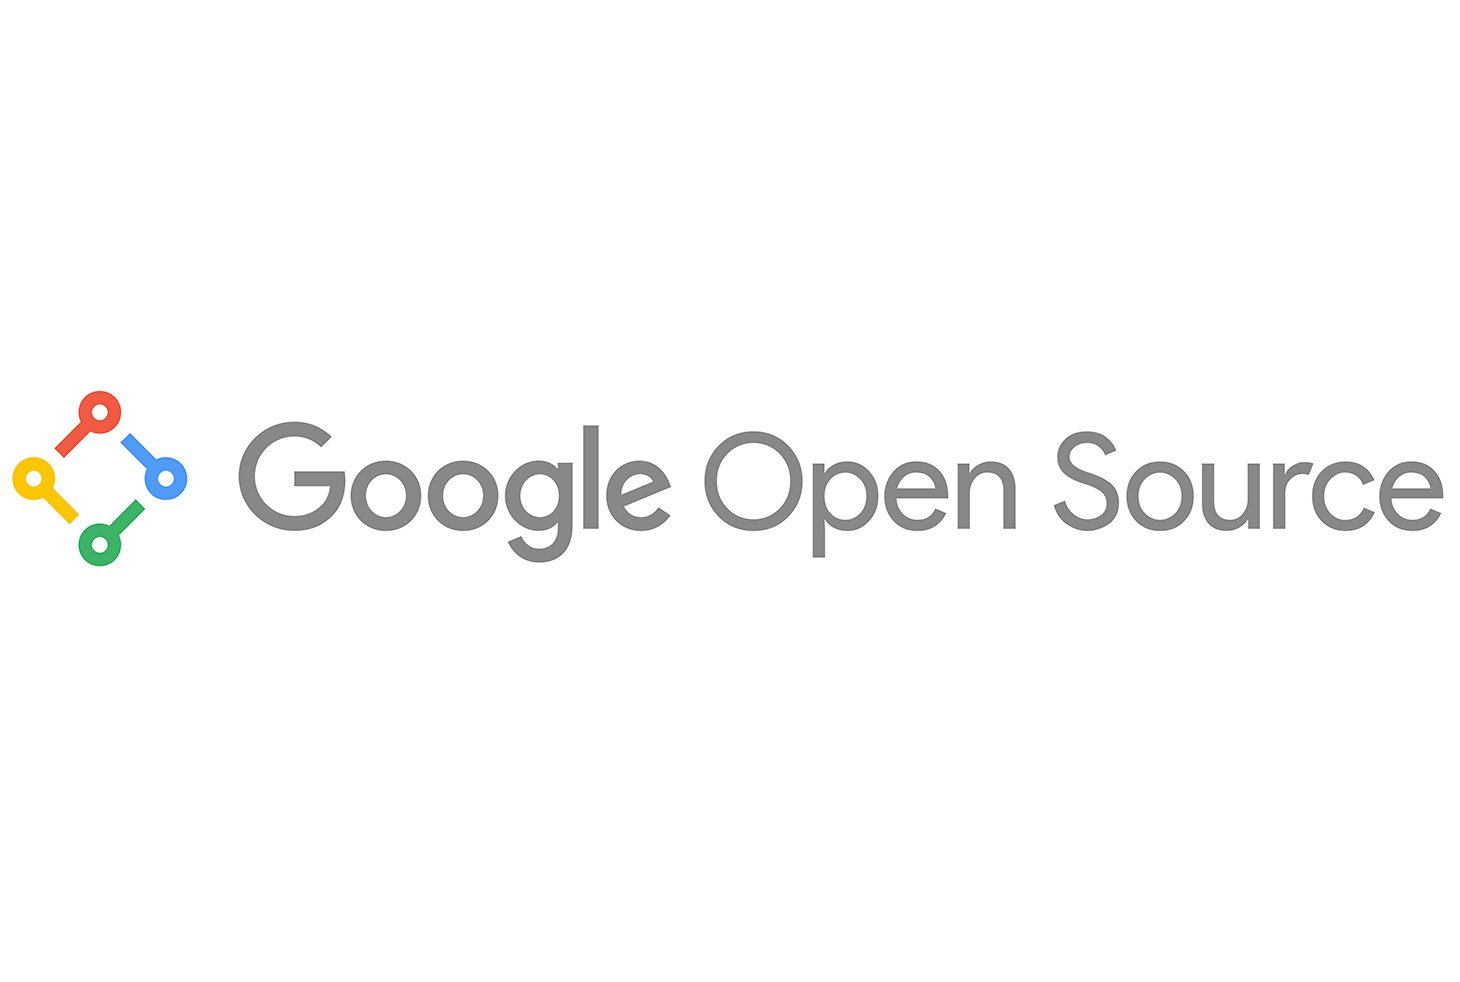 google-open-source-rectangle-logo2.jpg